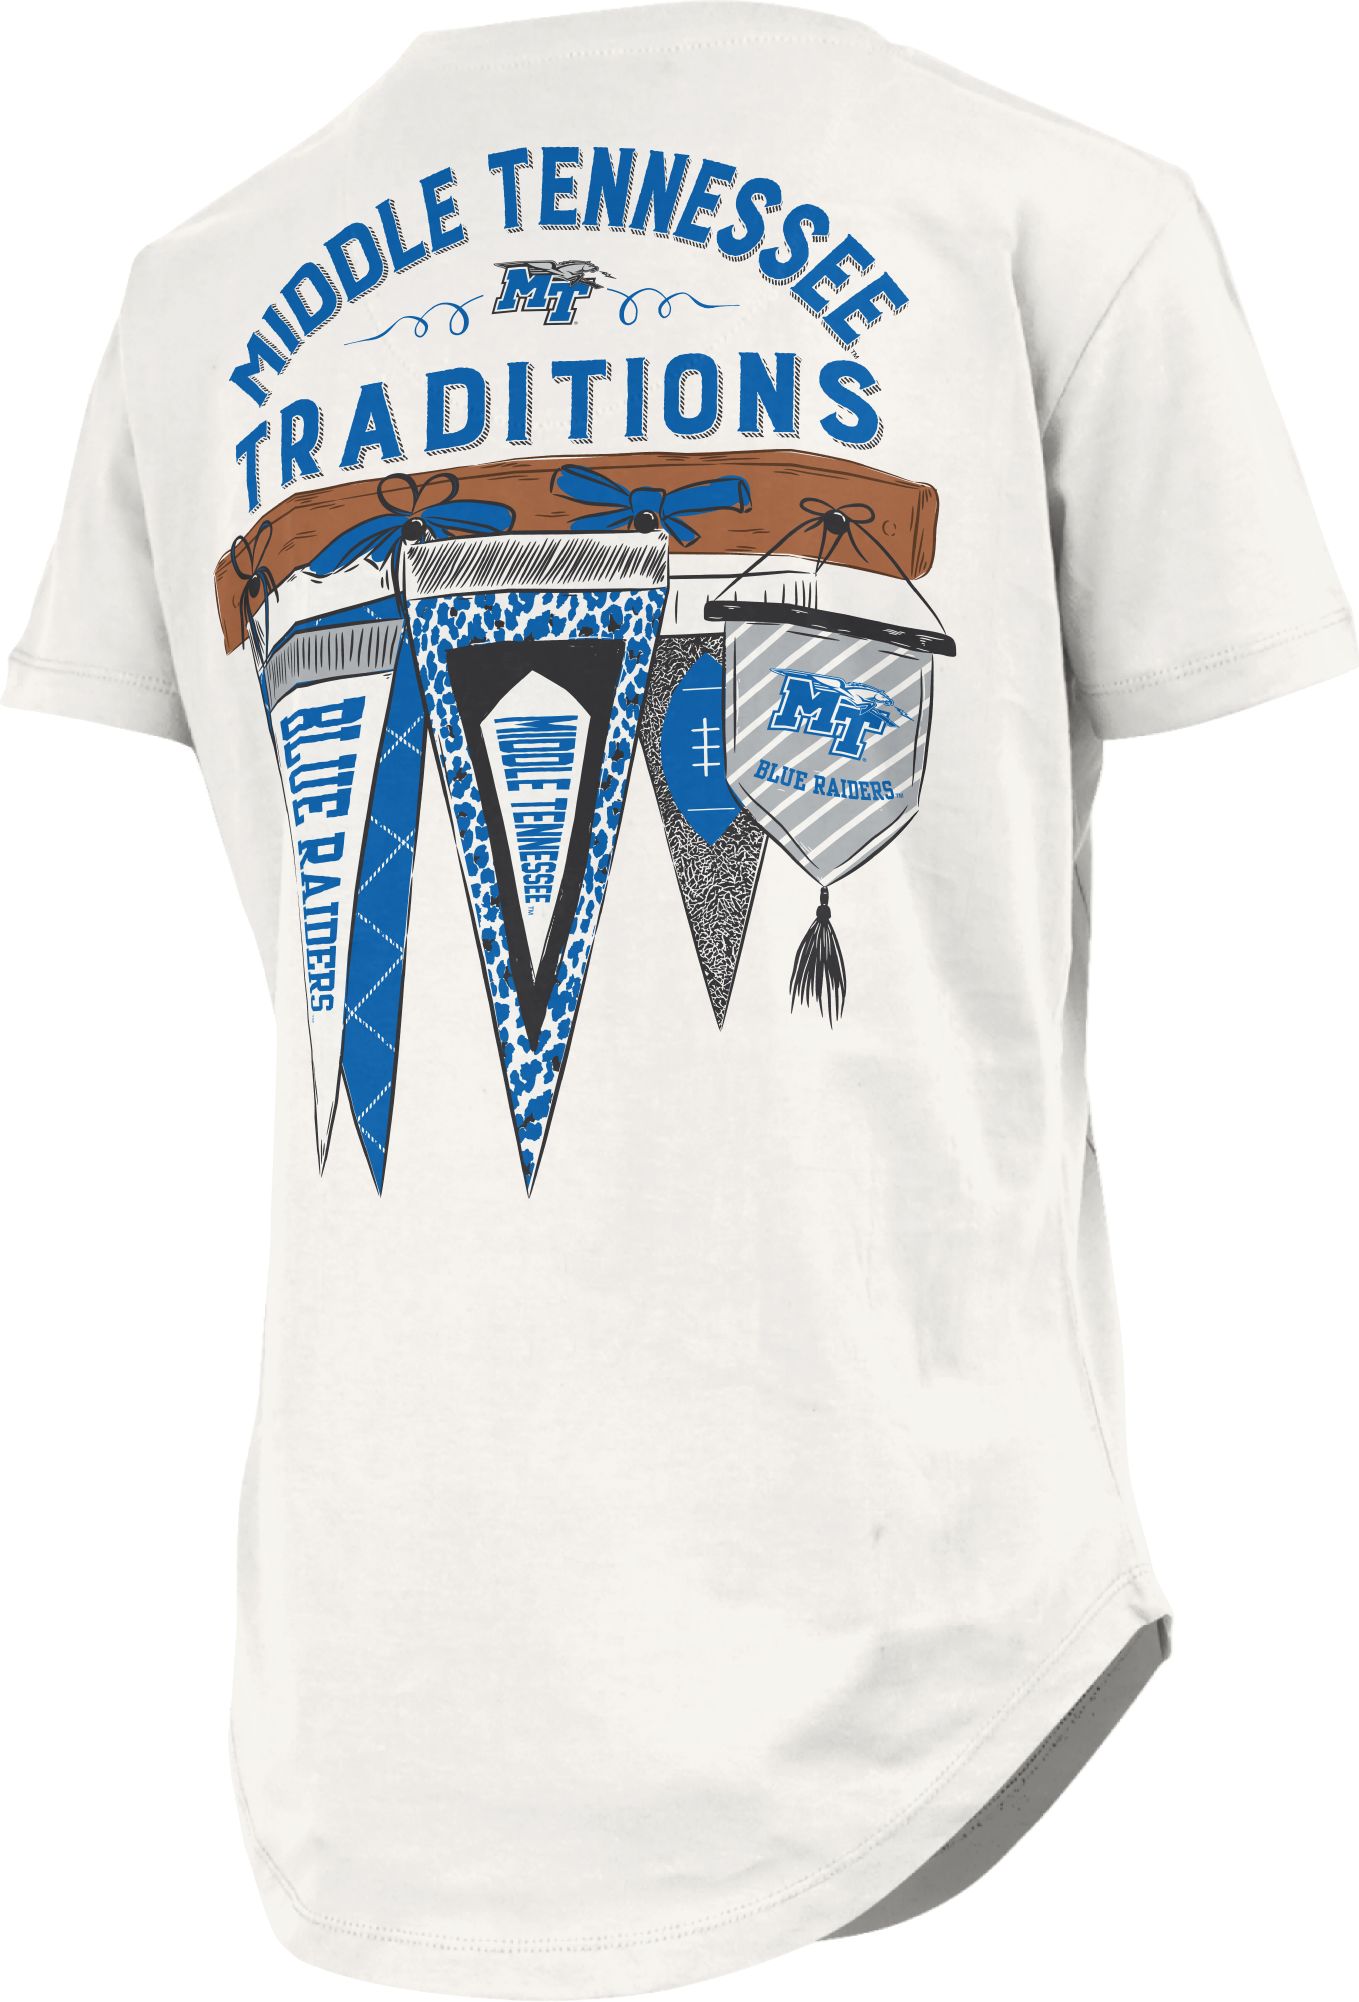 Middle Tennessee Traditions Shirt